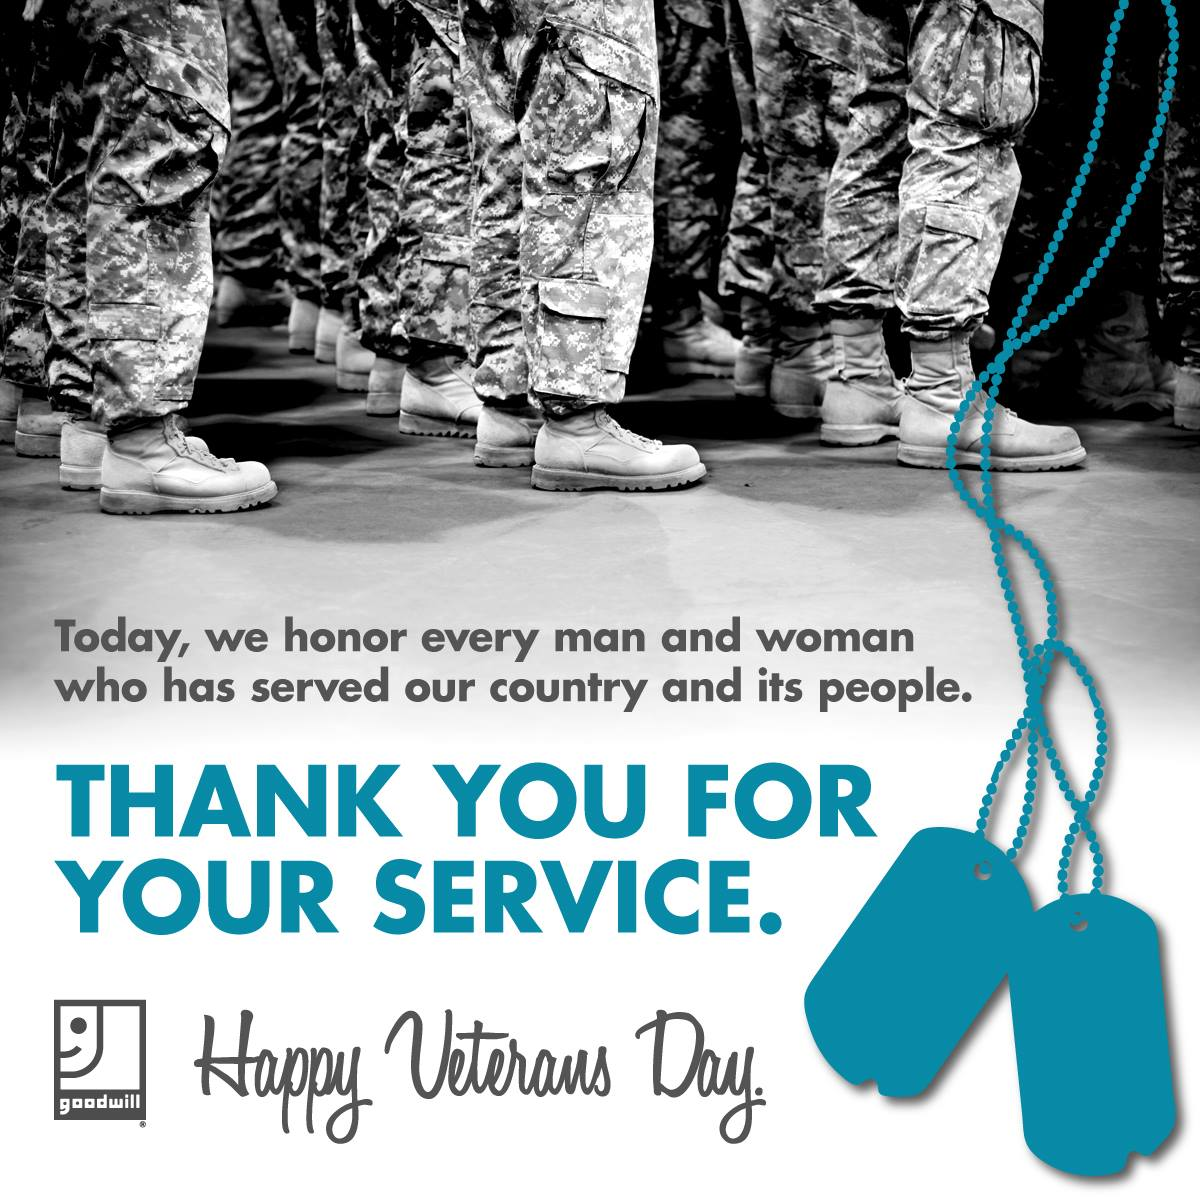 Goodwillsp On Twitter Happy Veteransday Thank You For Your